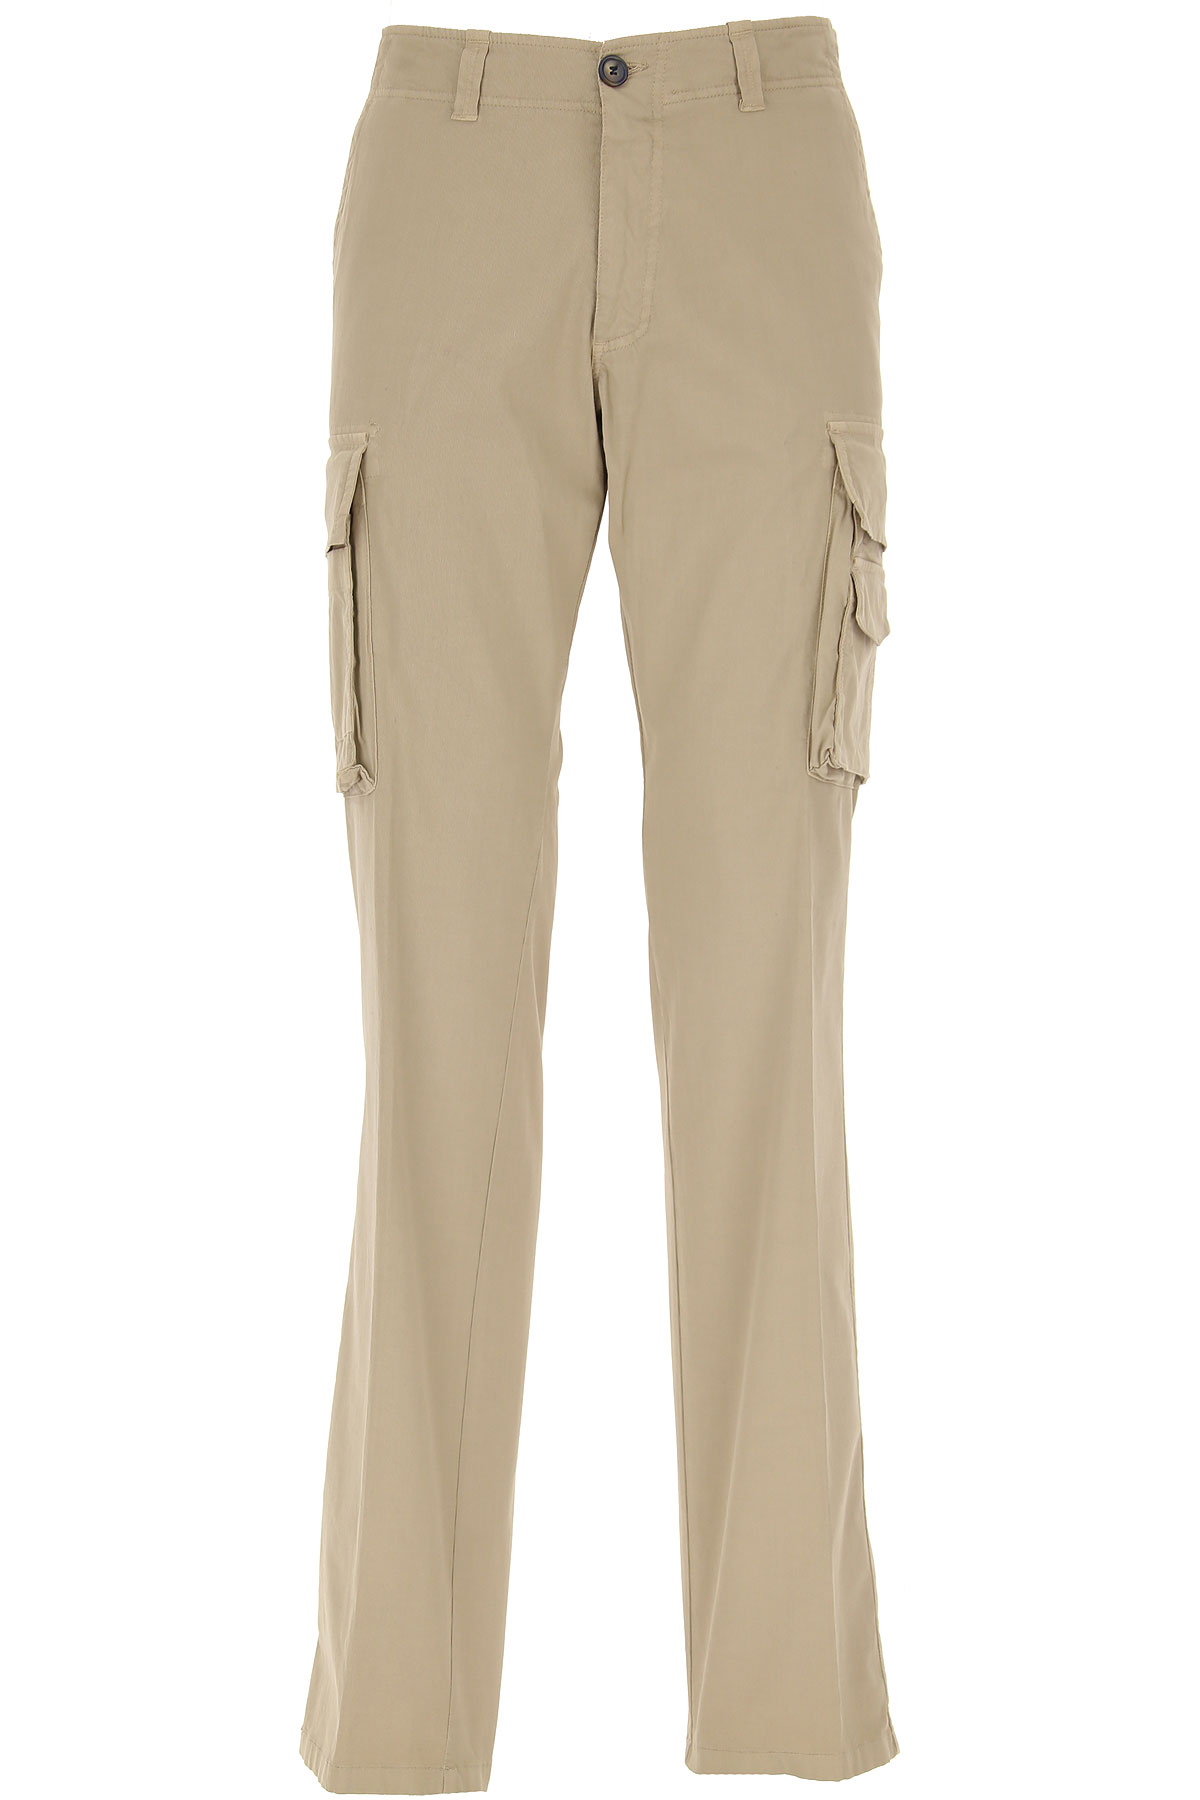 J.W. Brine Pants for Men On Sale, Beige, Cotton, 2019, 30 32 34 36 38 40